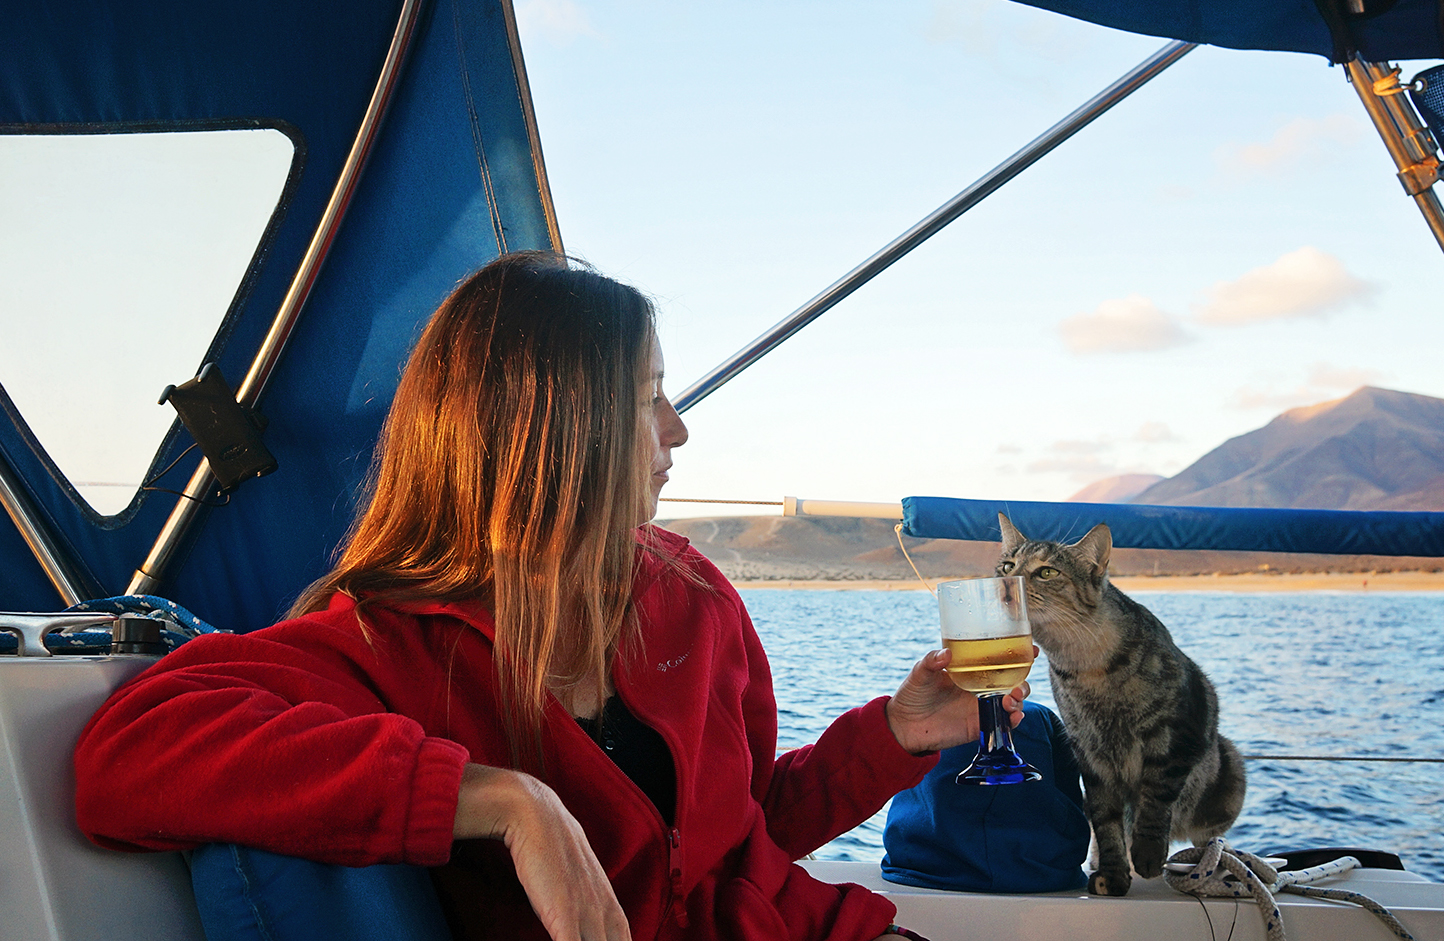 Georgie Boat Cat and Jessica Enjoy Beverages